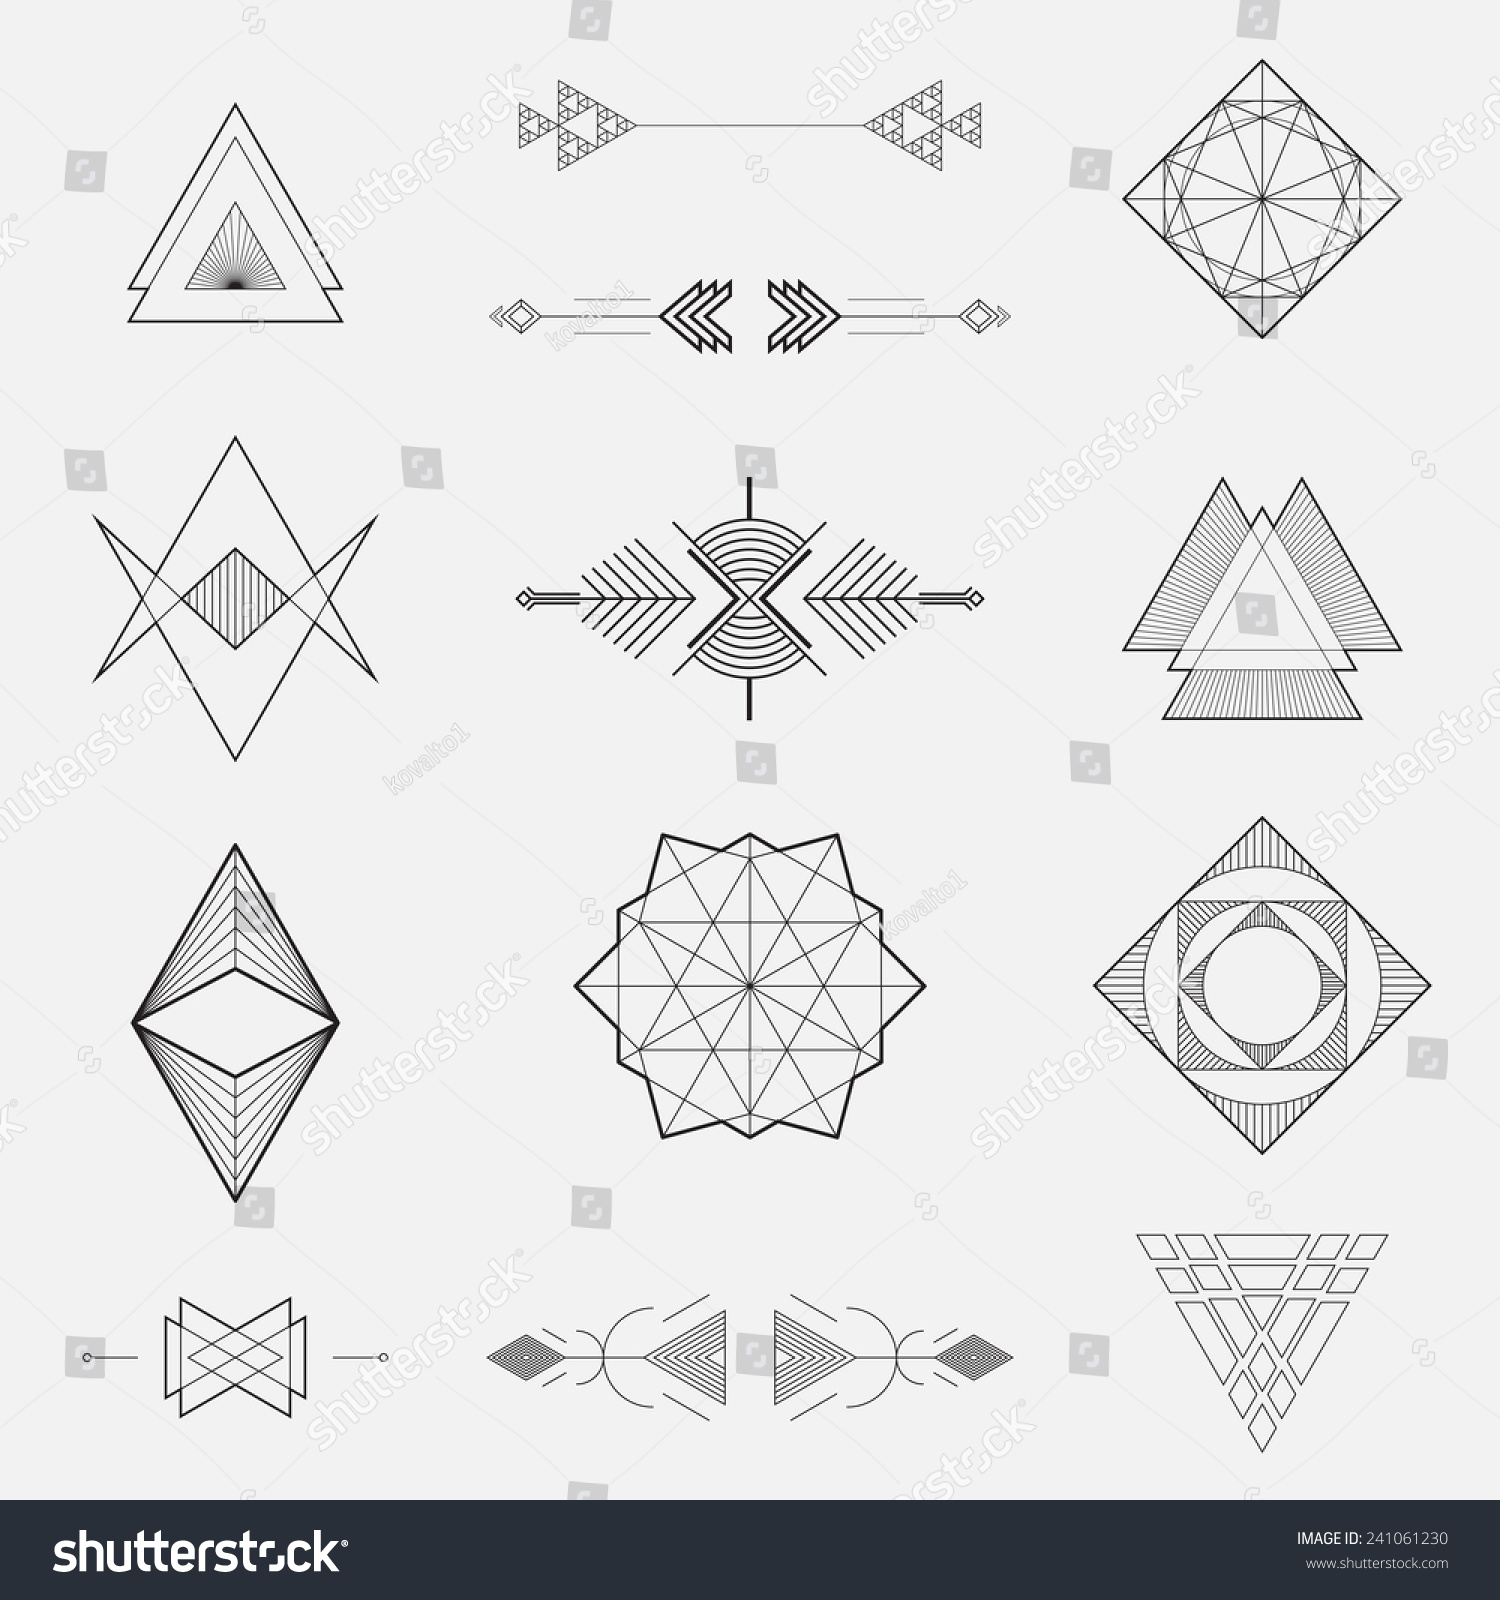 Worksheet Shapes Geometry set geometric shapes triangles line design stock vector 241061230 of vector